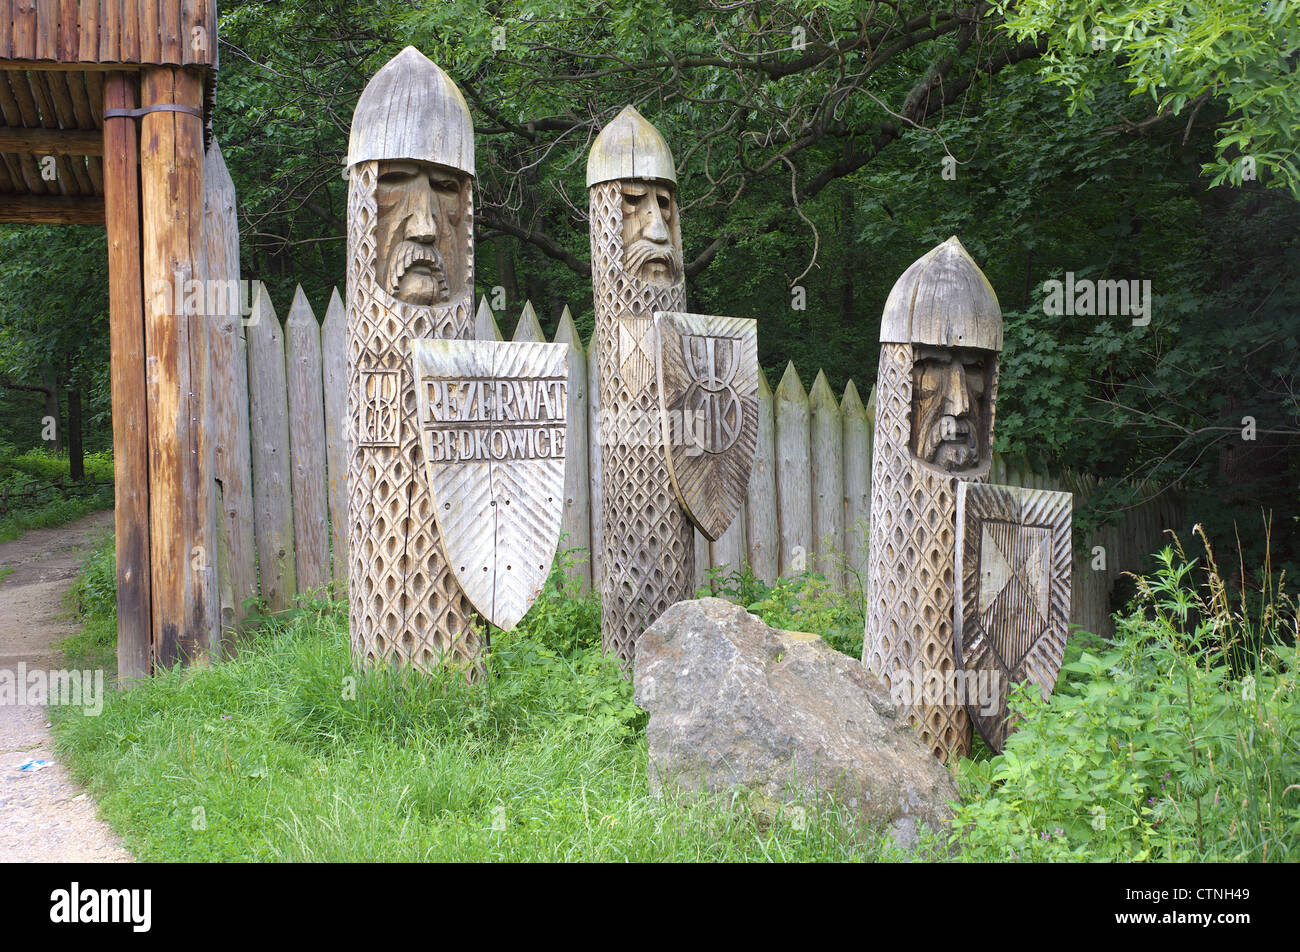 Wooden sculptures Bedkowice ancient Slavic dwelling Lower Silesia Poland - Stock Image